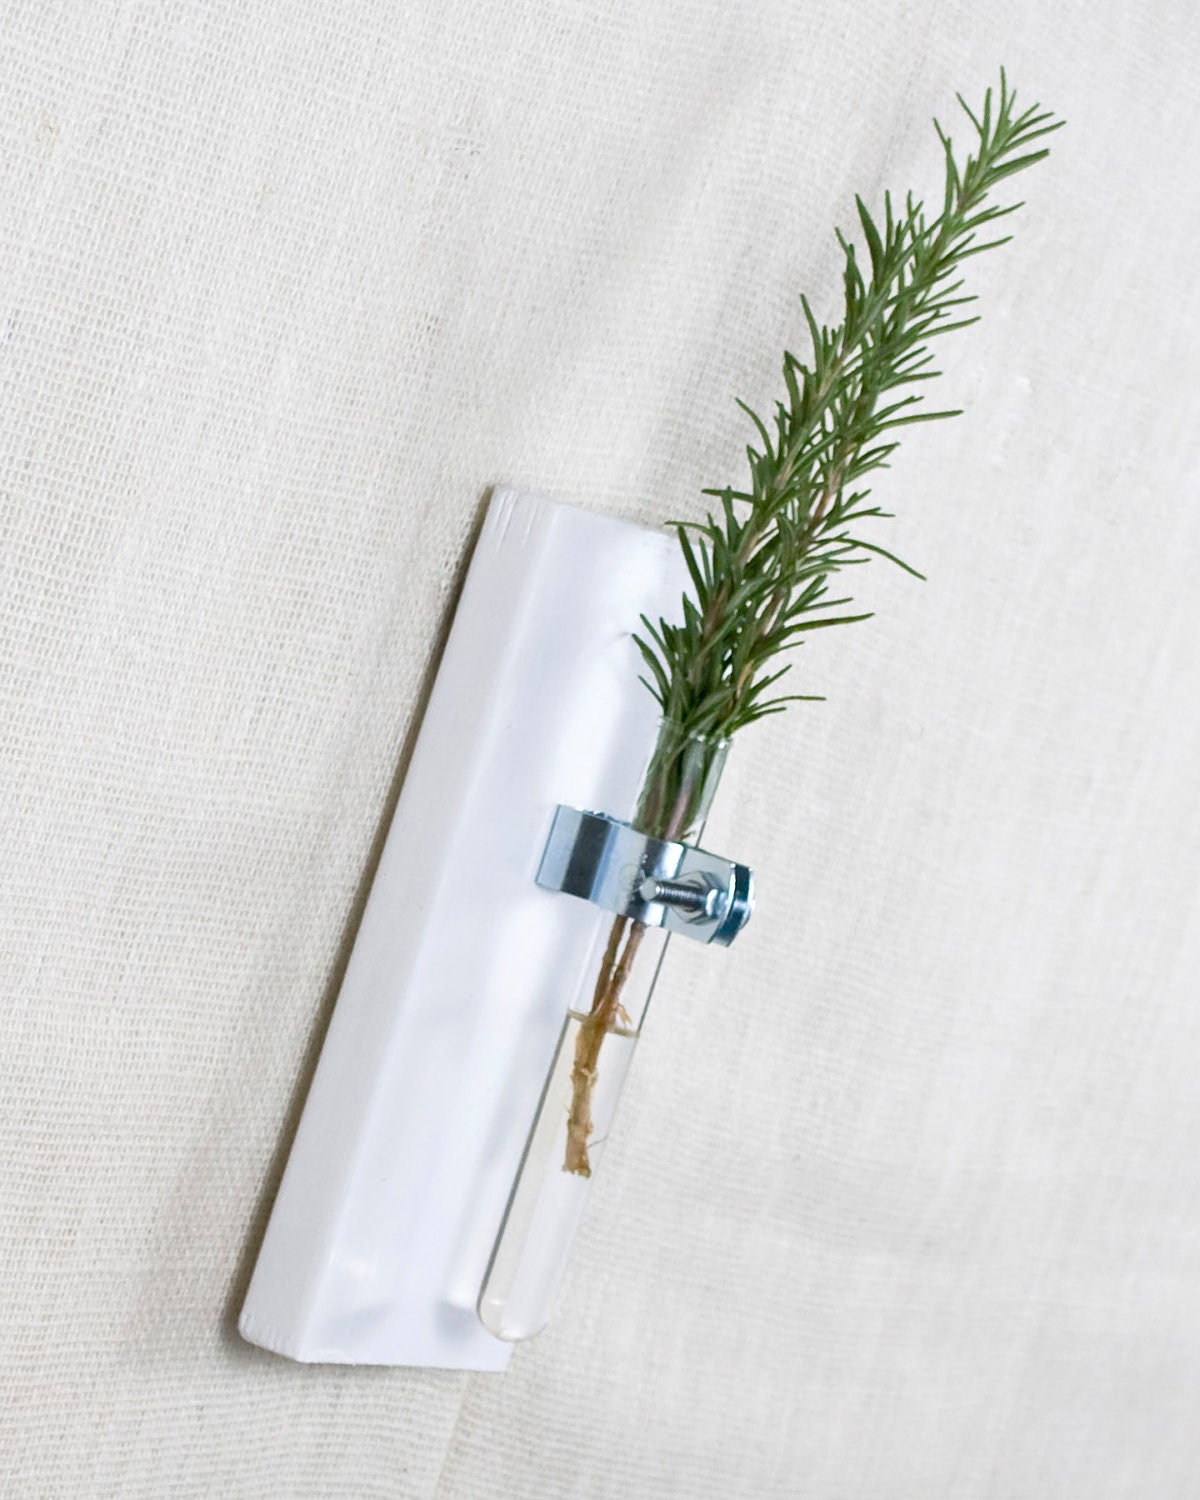 Wall sconces vases outdoor decor ideas summer 2016 test tube wall vase gift set white hanging vase bud by anothercup reviewsmspy